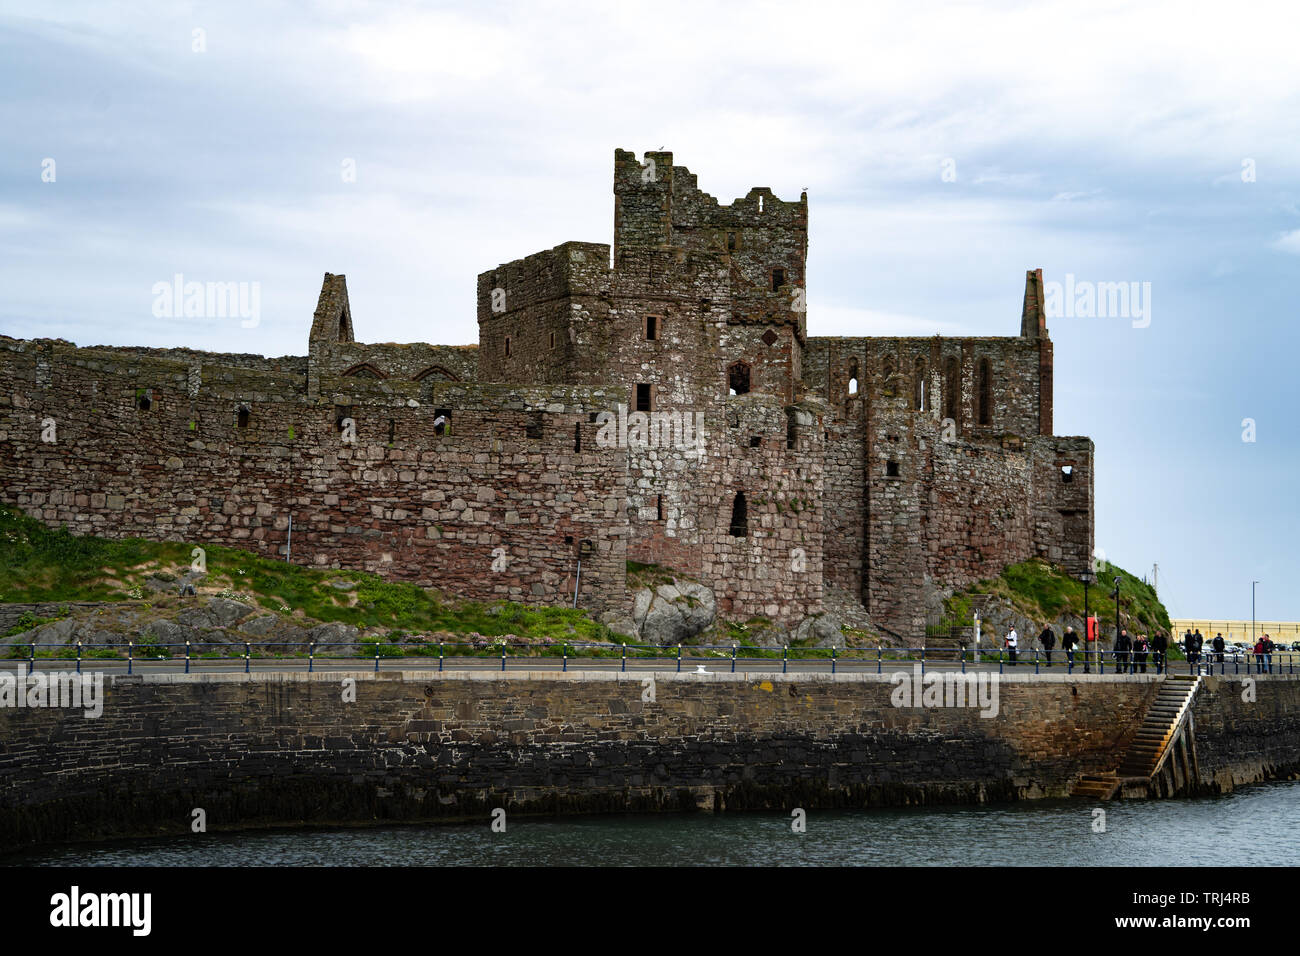 Cathedral and curtain wall, Peel Castle, Isle of Man, UK - Stock Image